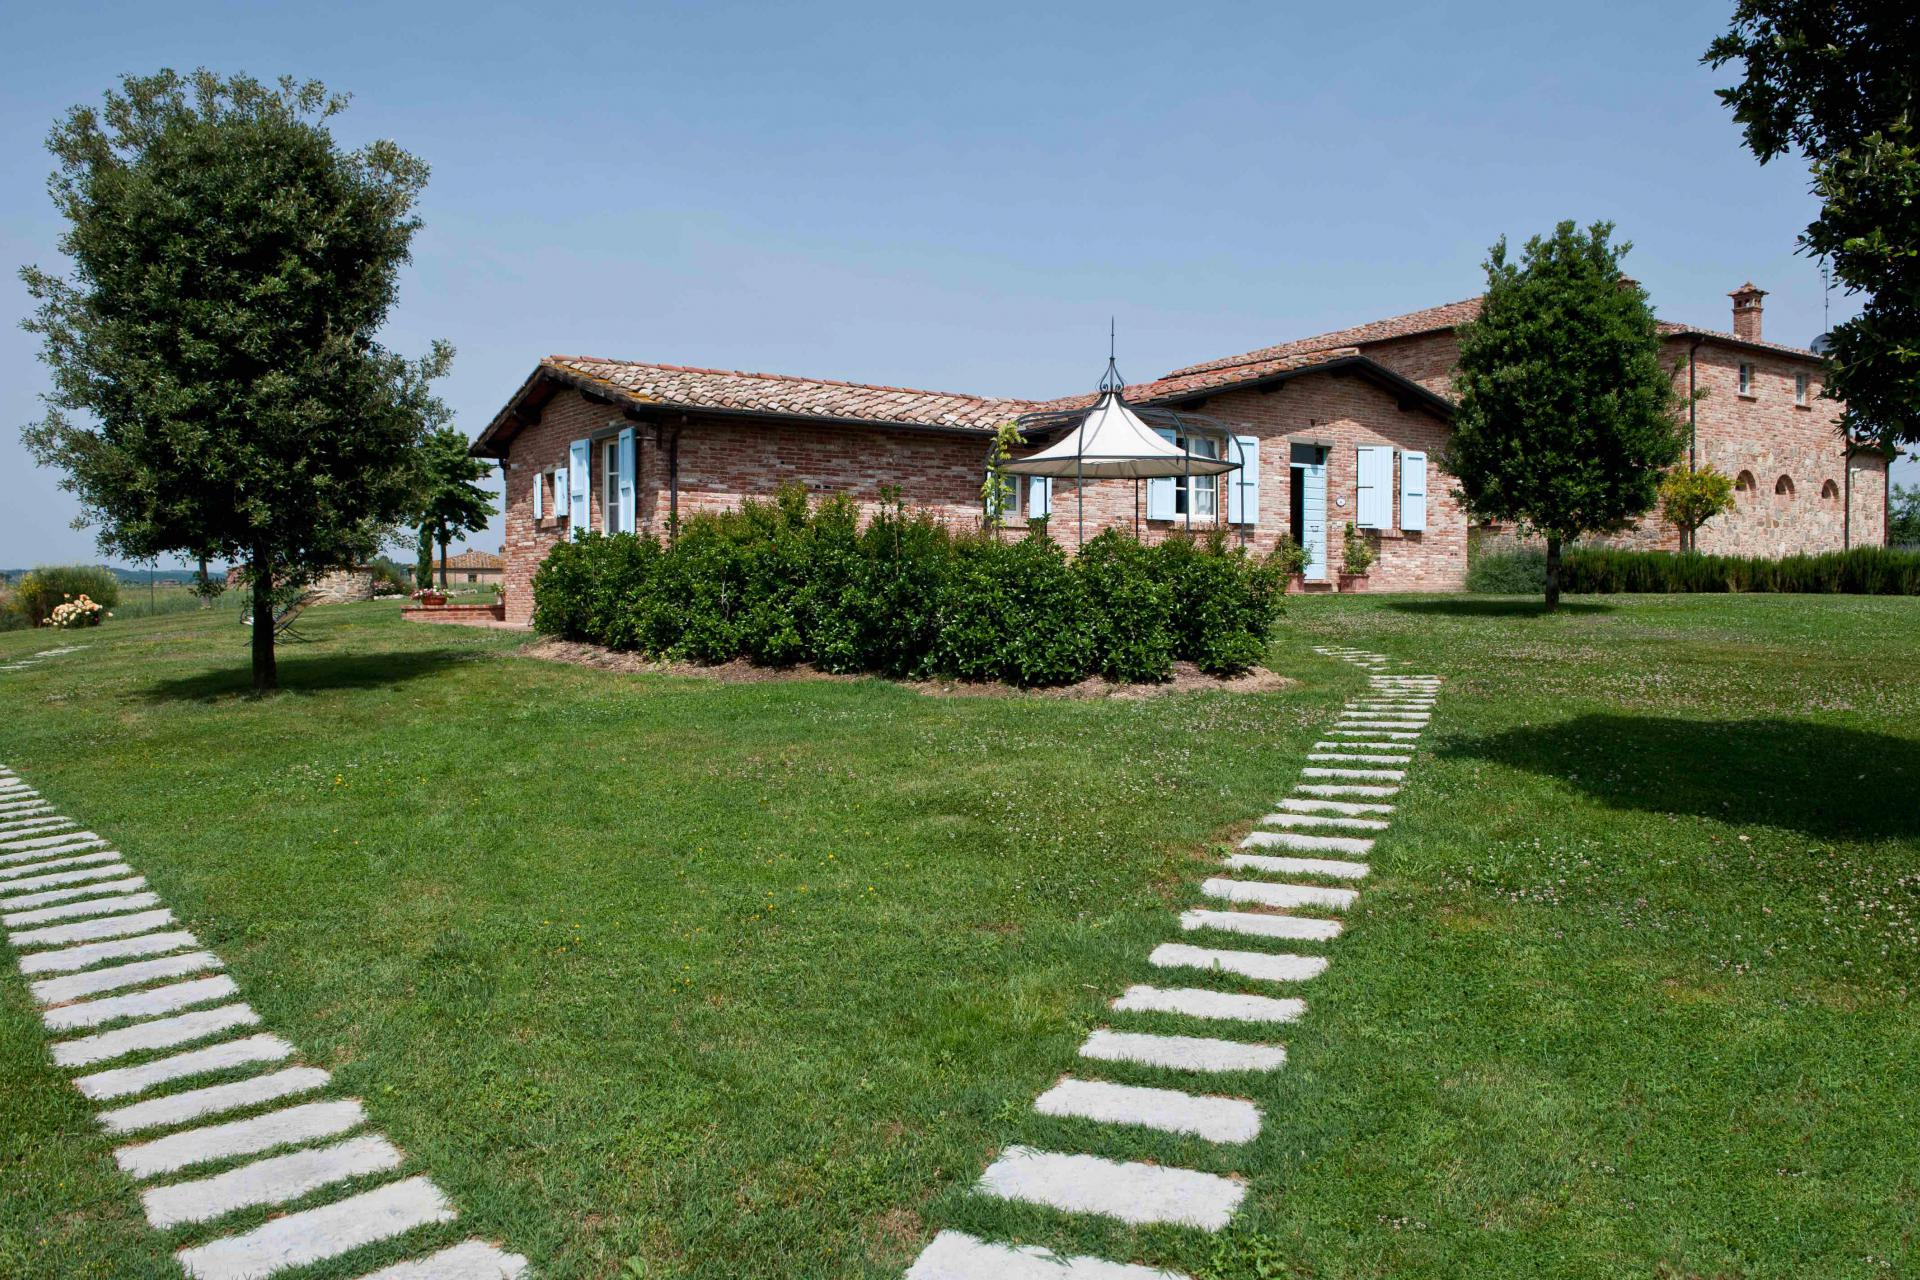 Agriturismo Tuscany Luxury agriturismo near the sea in Tuscany